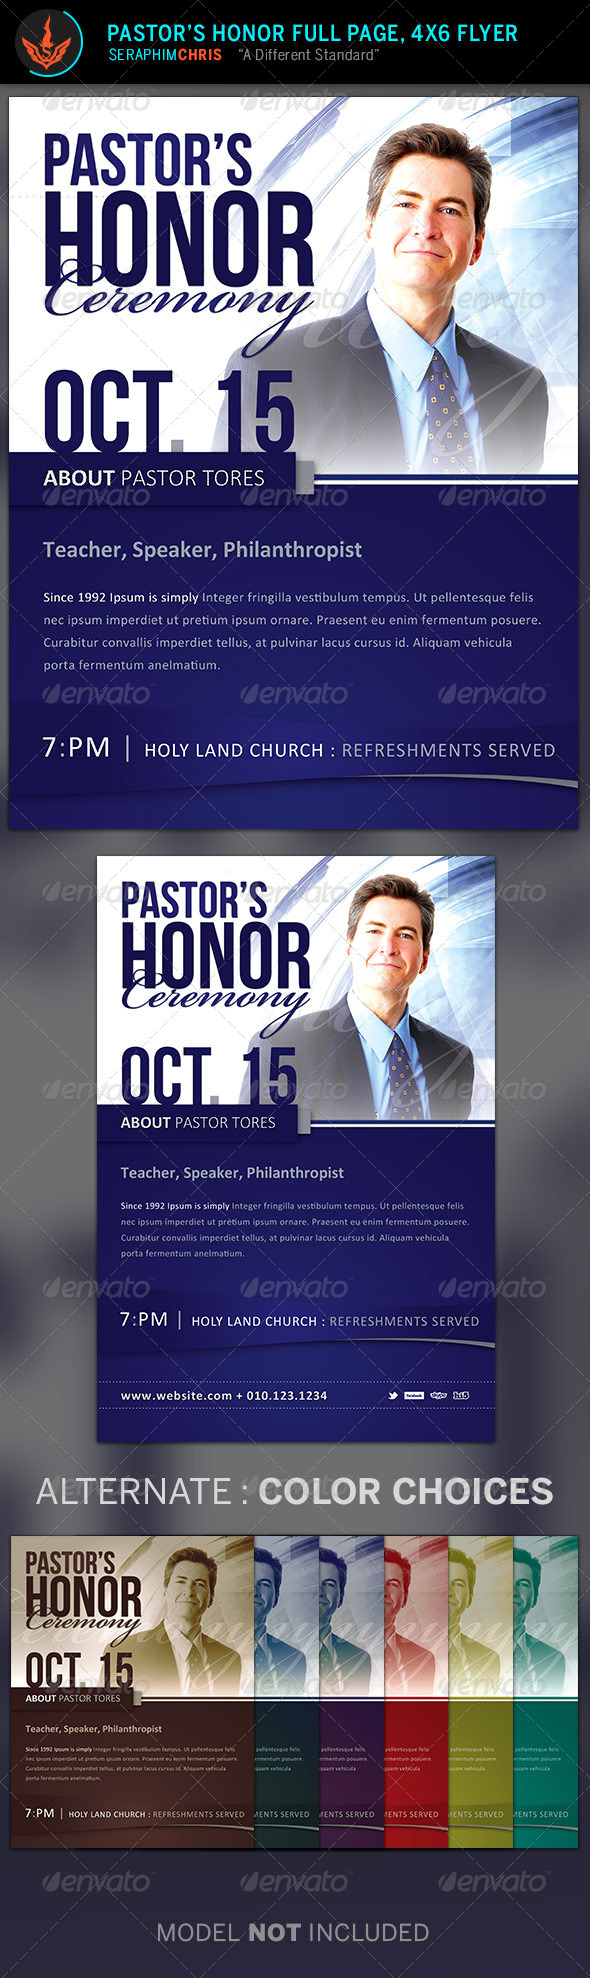 Pastor s Honor Church Flyer Template